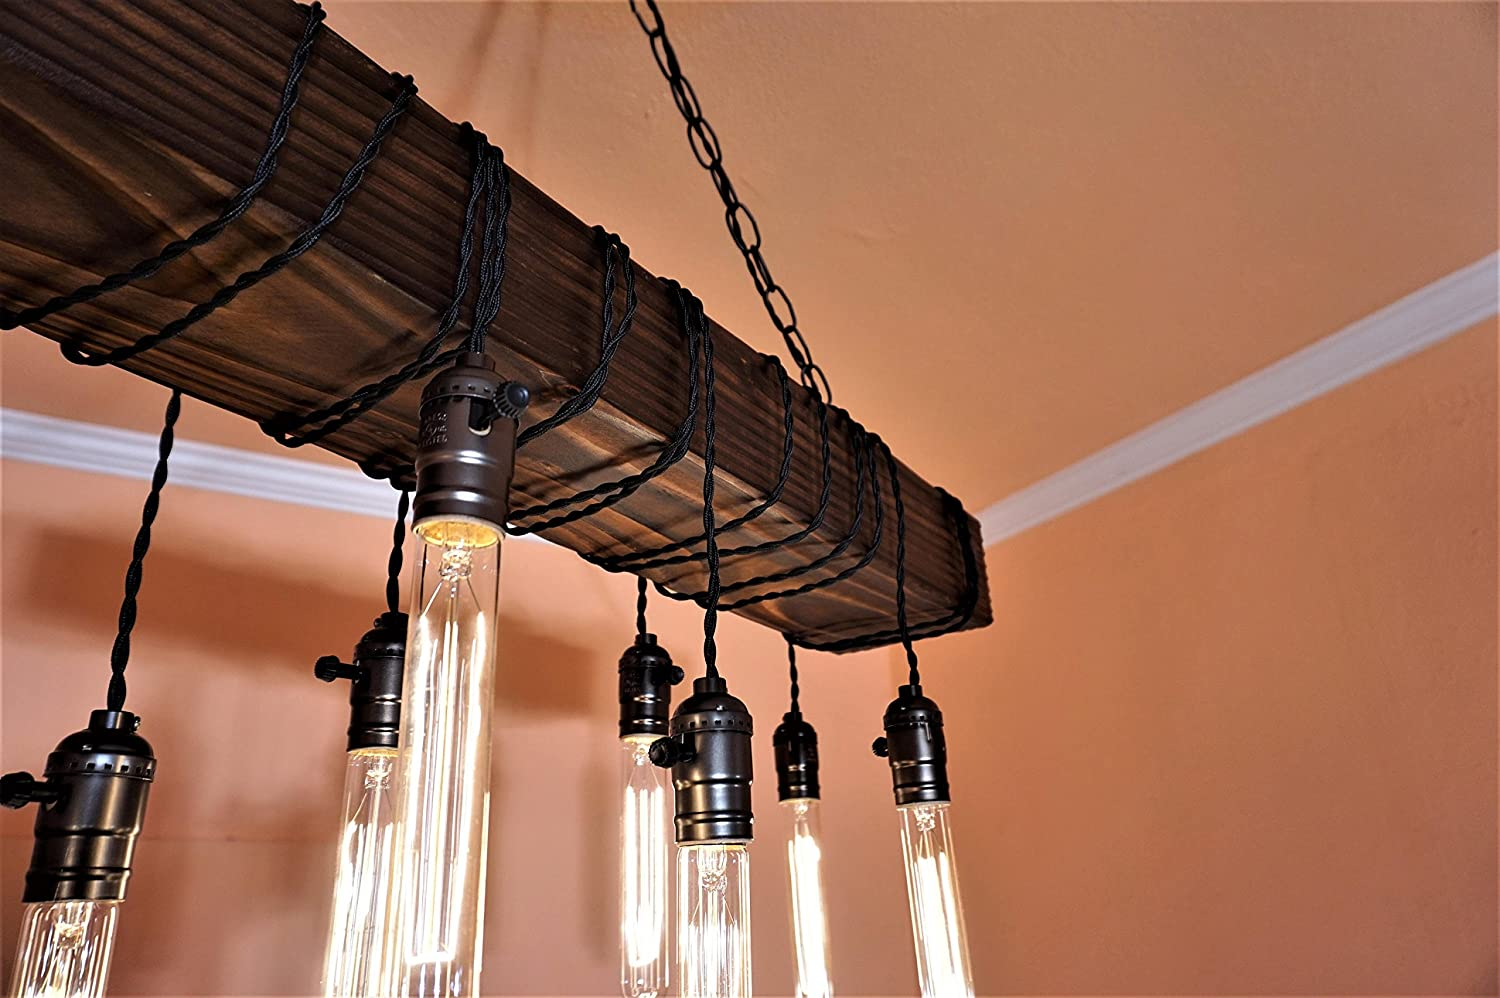 Chandelier Real Barn Wood Made By Muller Designs Made In Los Angeles 2 Different Beam Sizes